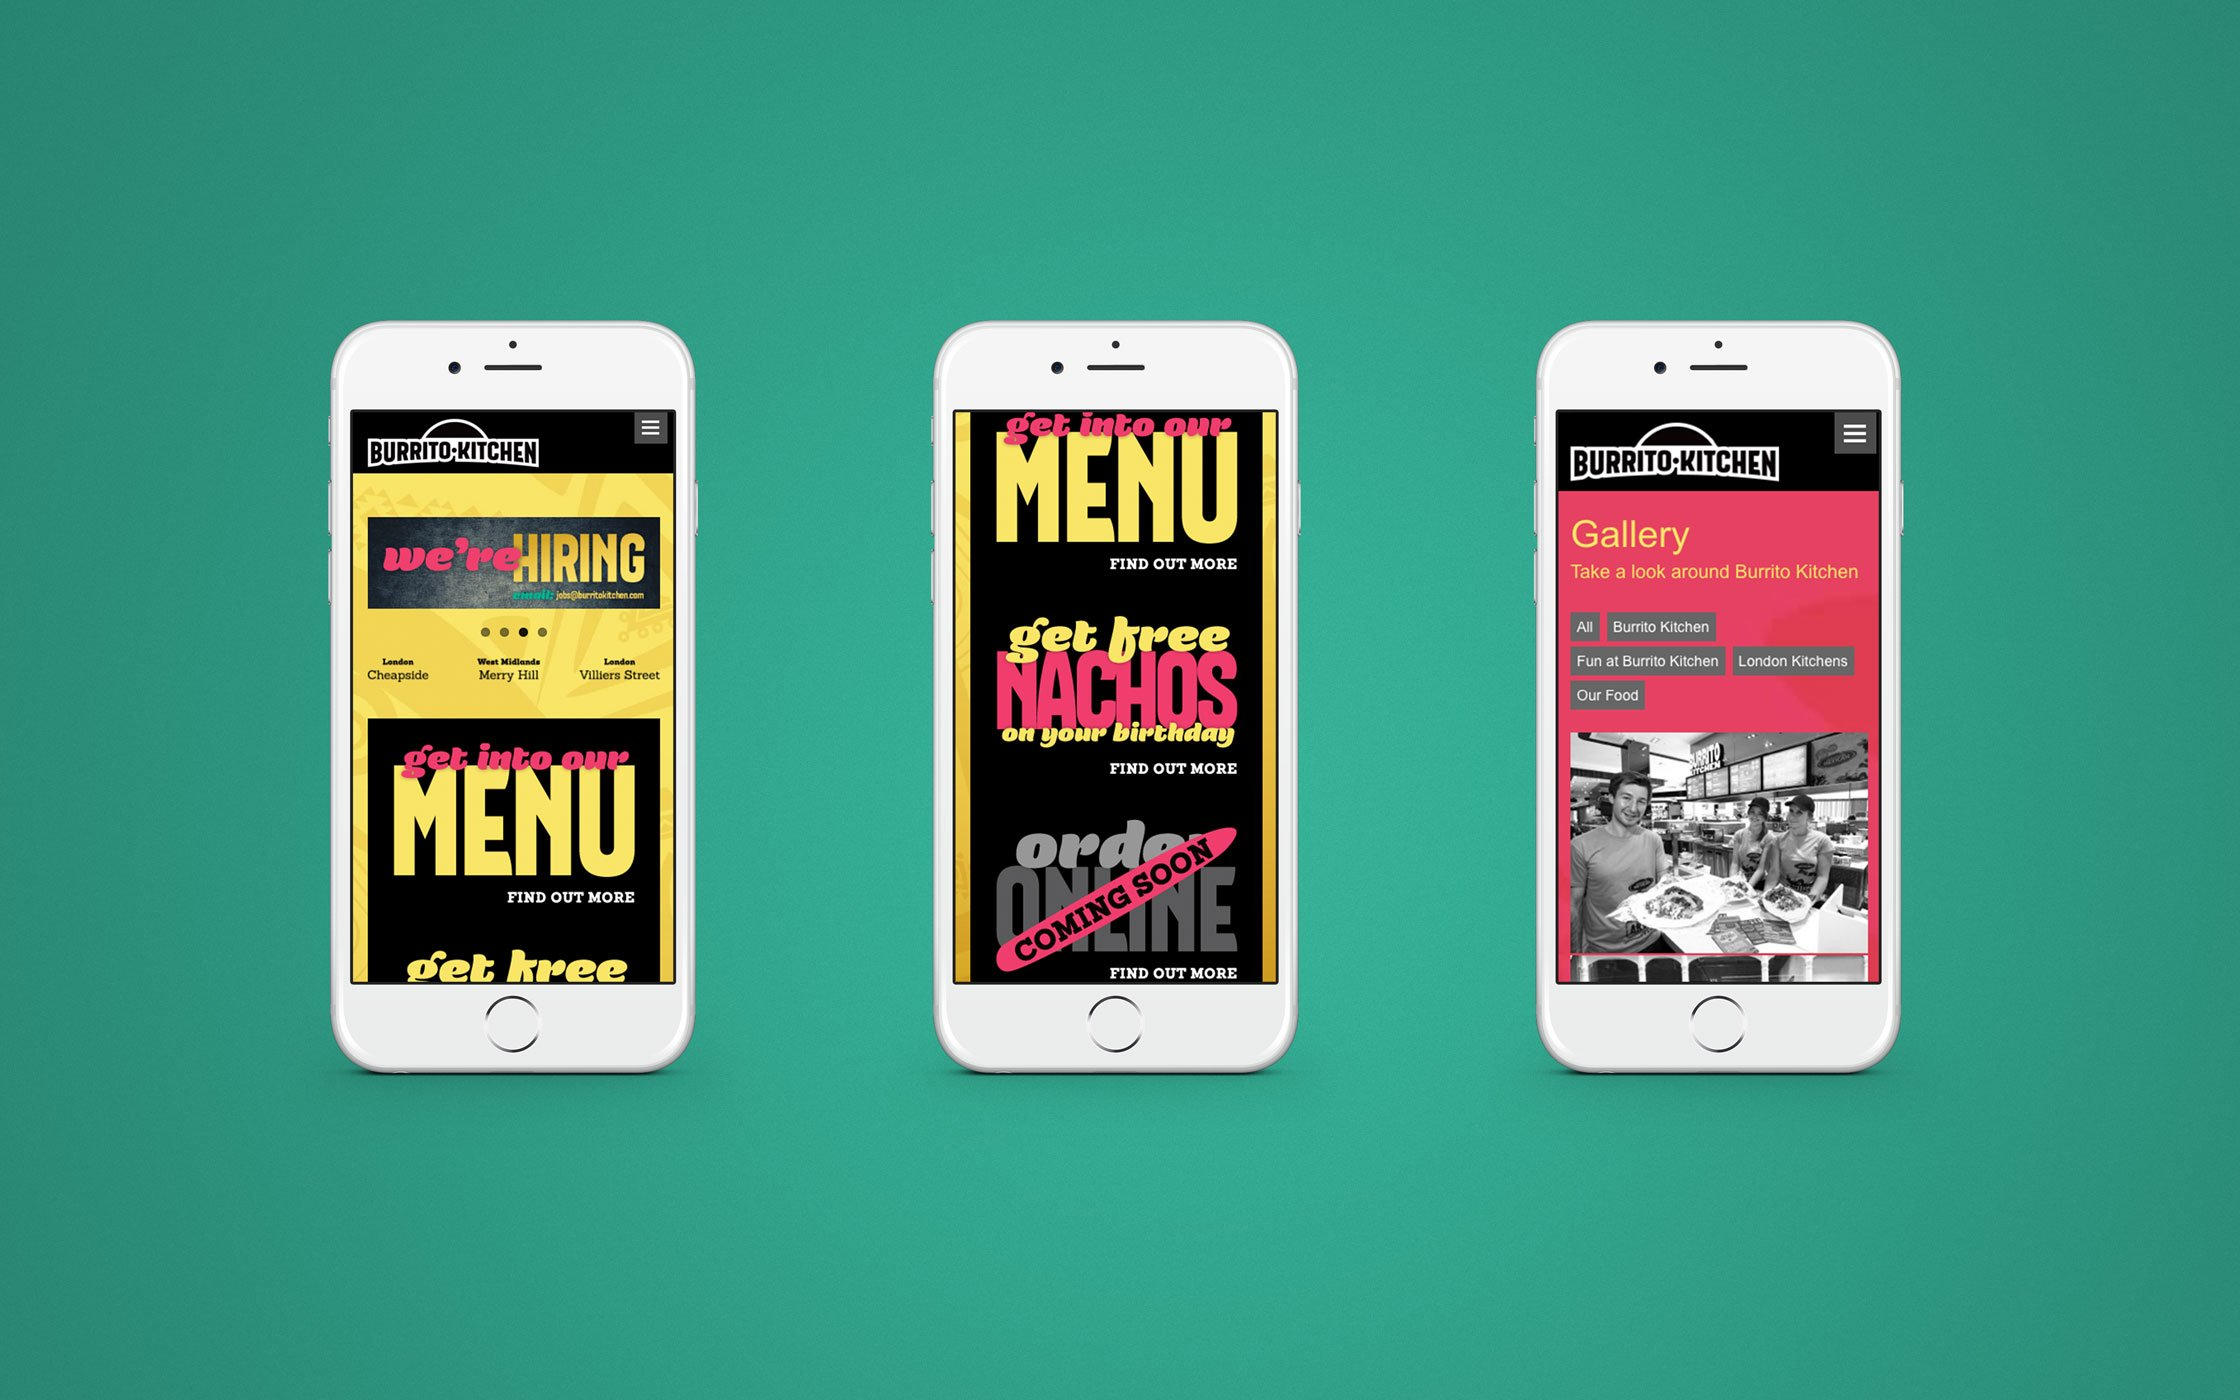 Responsive website developed for Burrito Kitchen